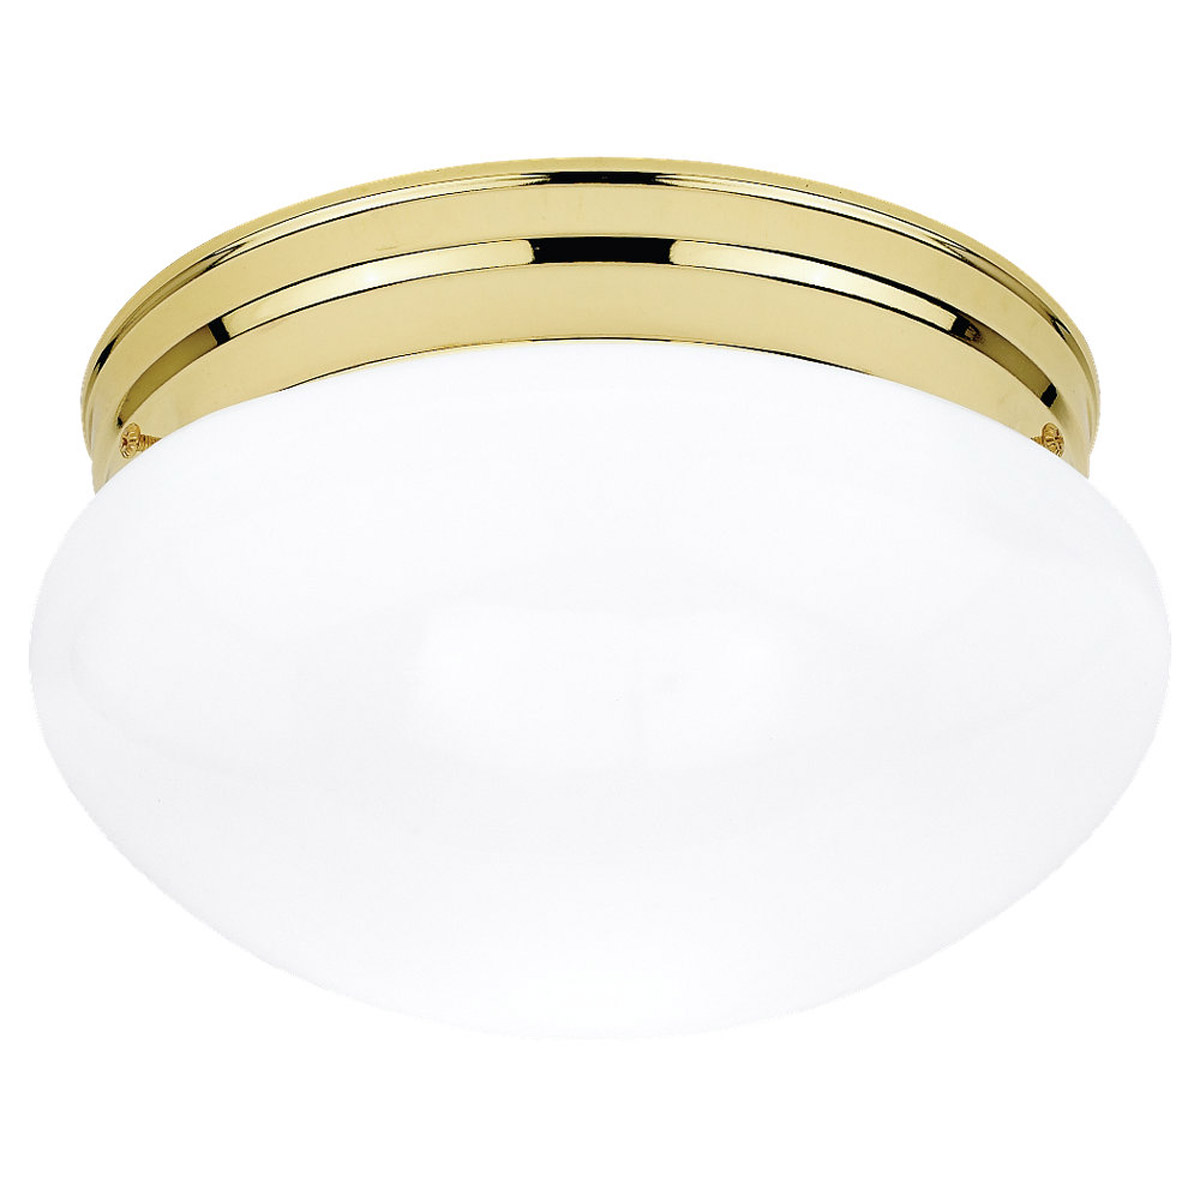 Sea Gull Lighting Webster 2 Light Flush Mount in Polished Brass 5328-02